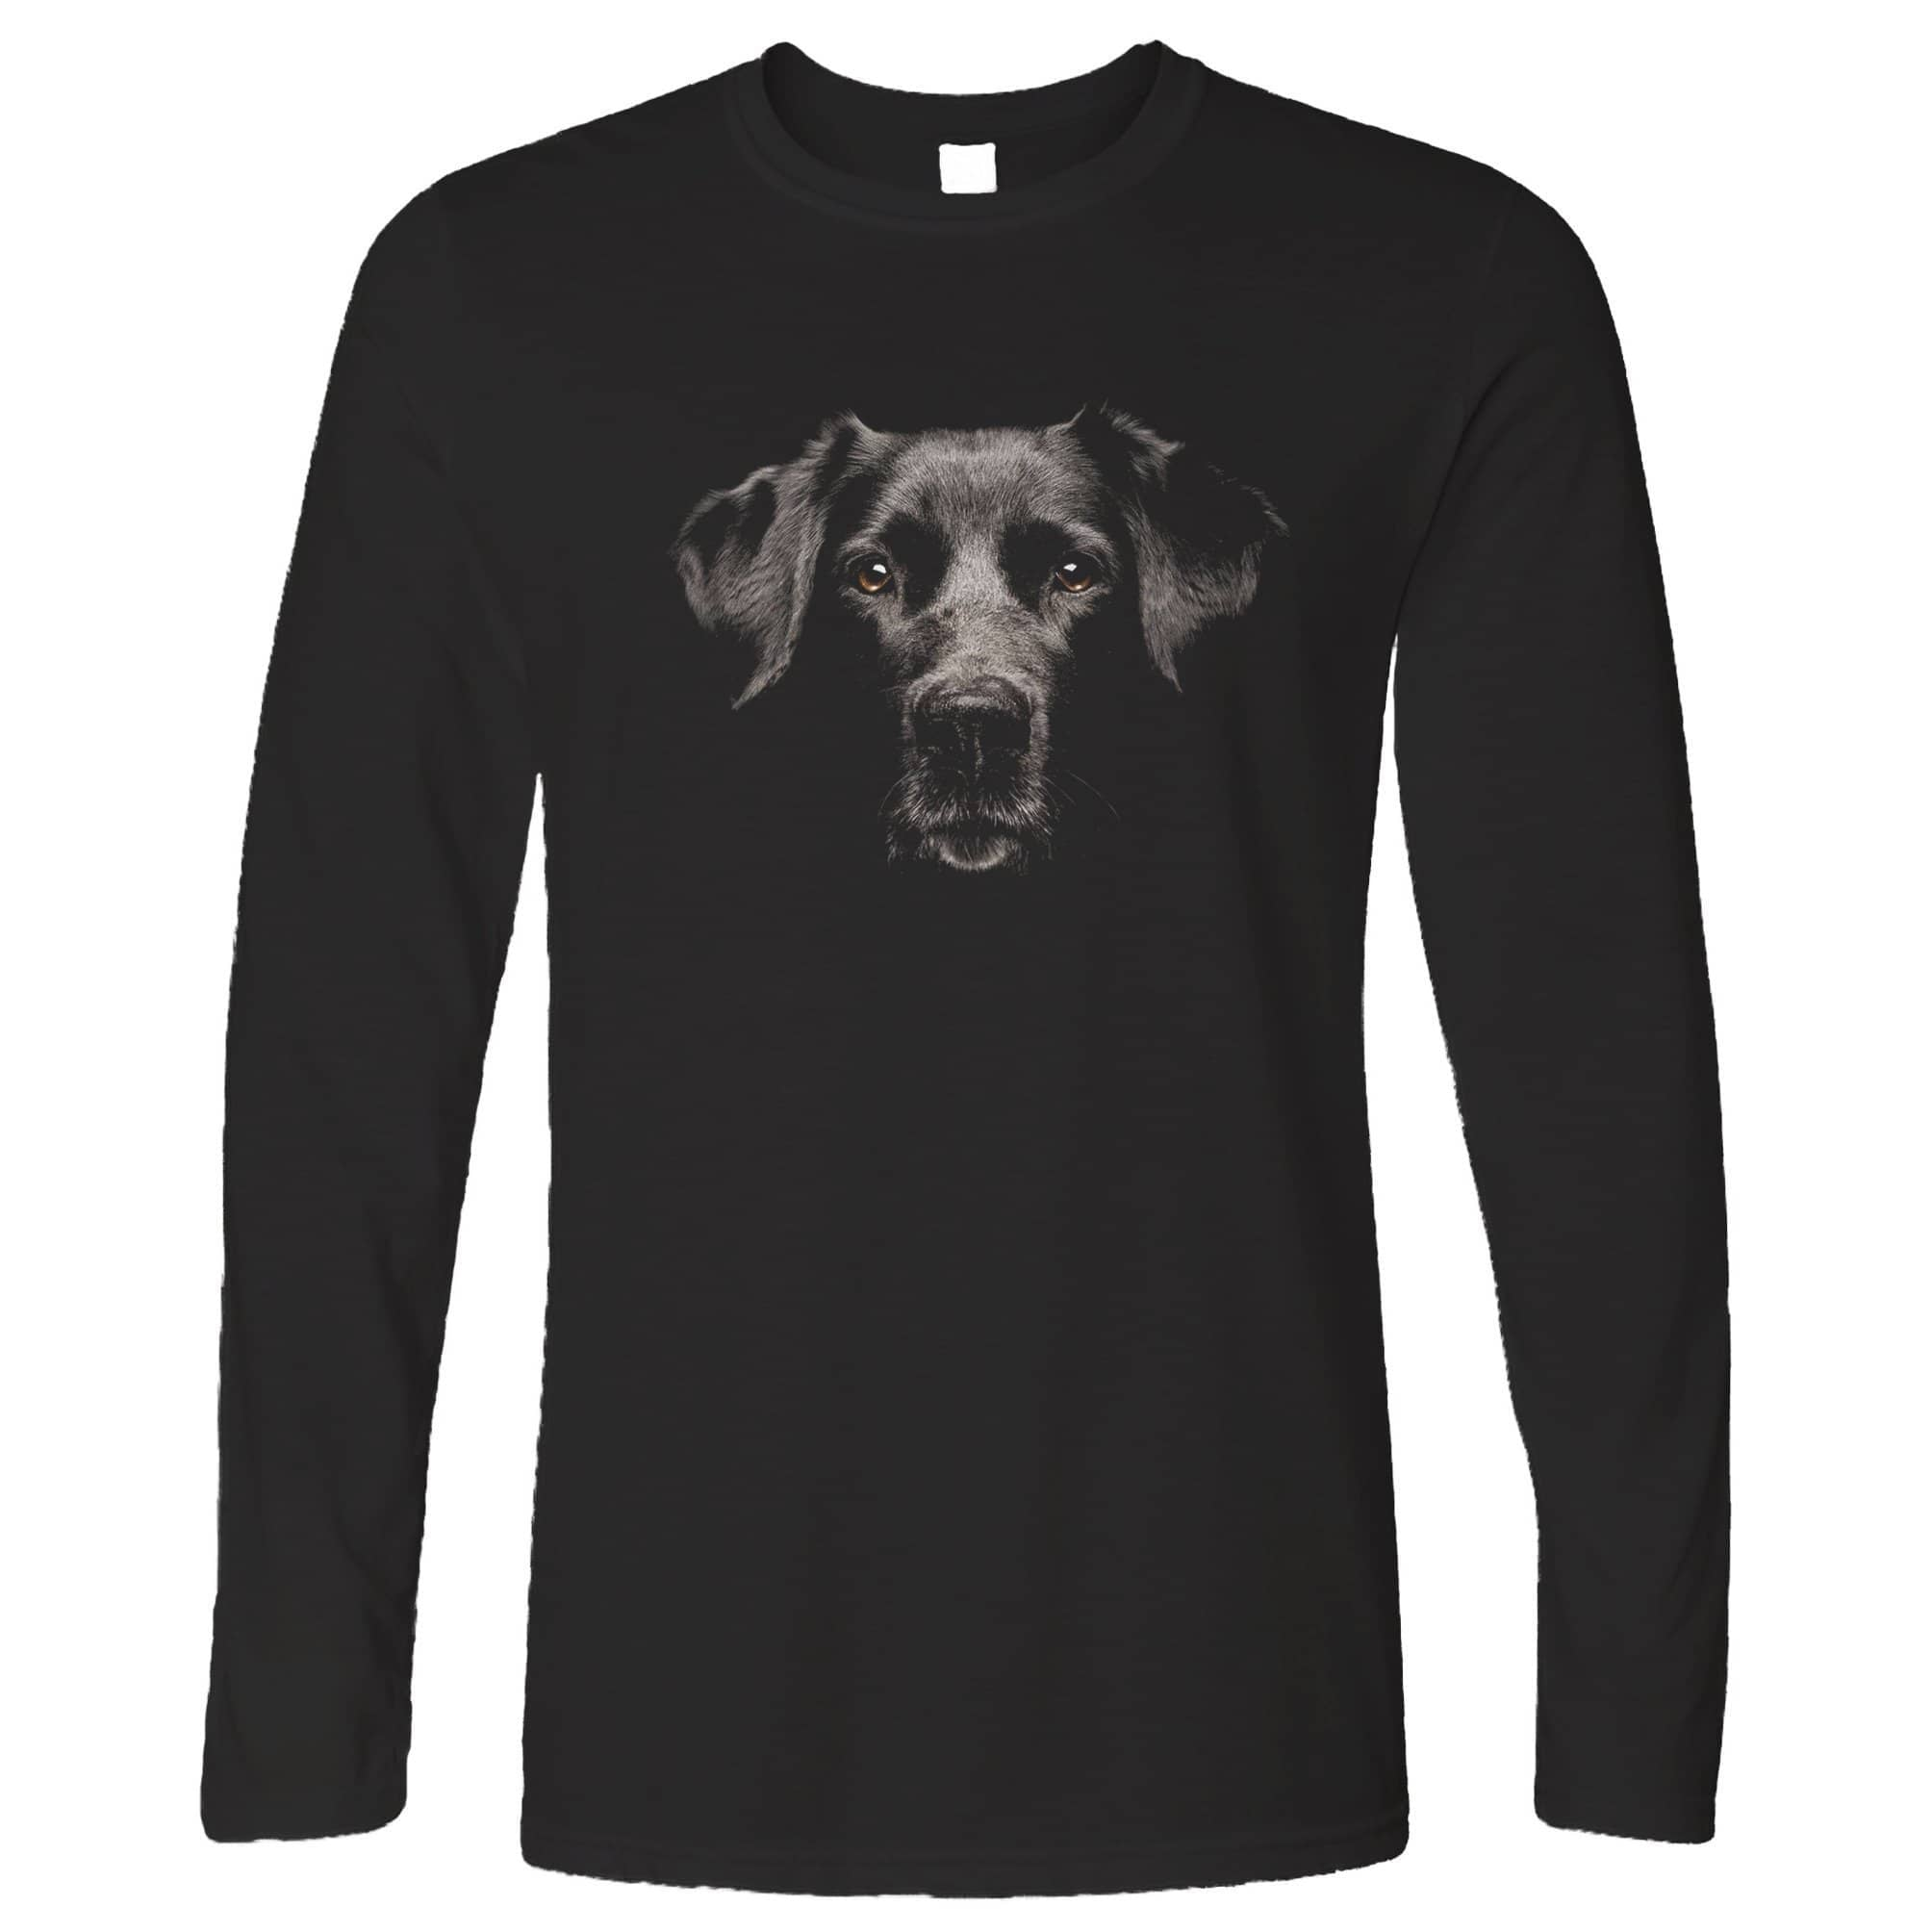 Dog Face Long Sleeve Cute Puppy Head Photo T-Shirt